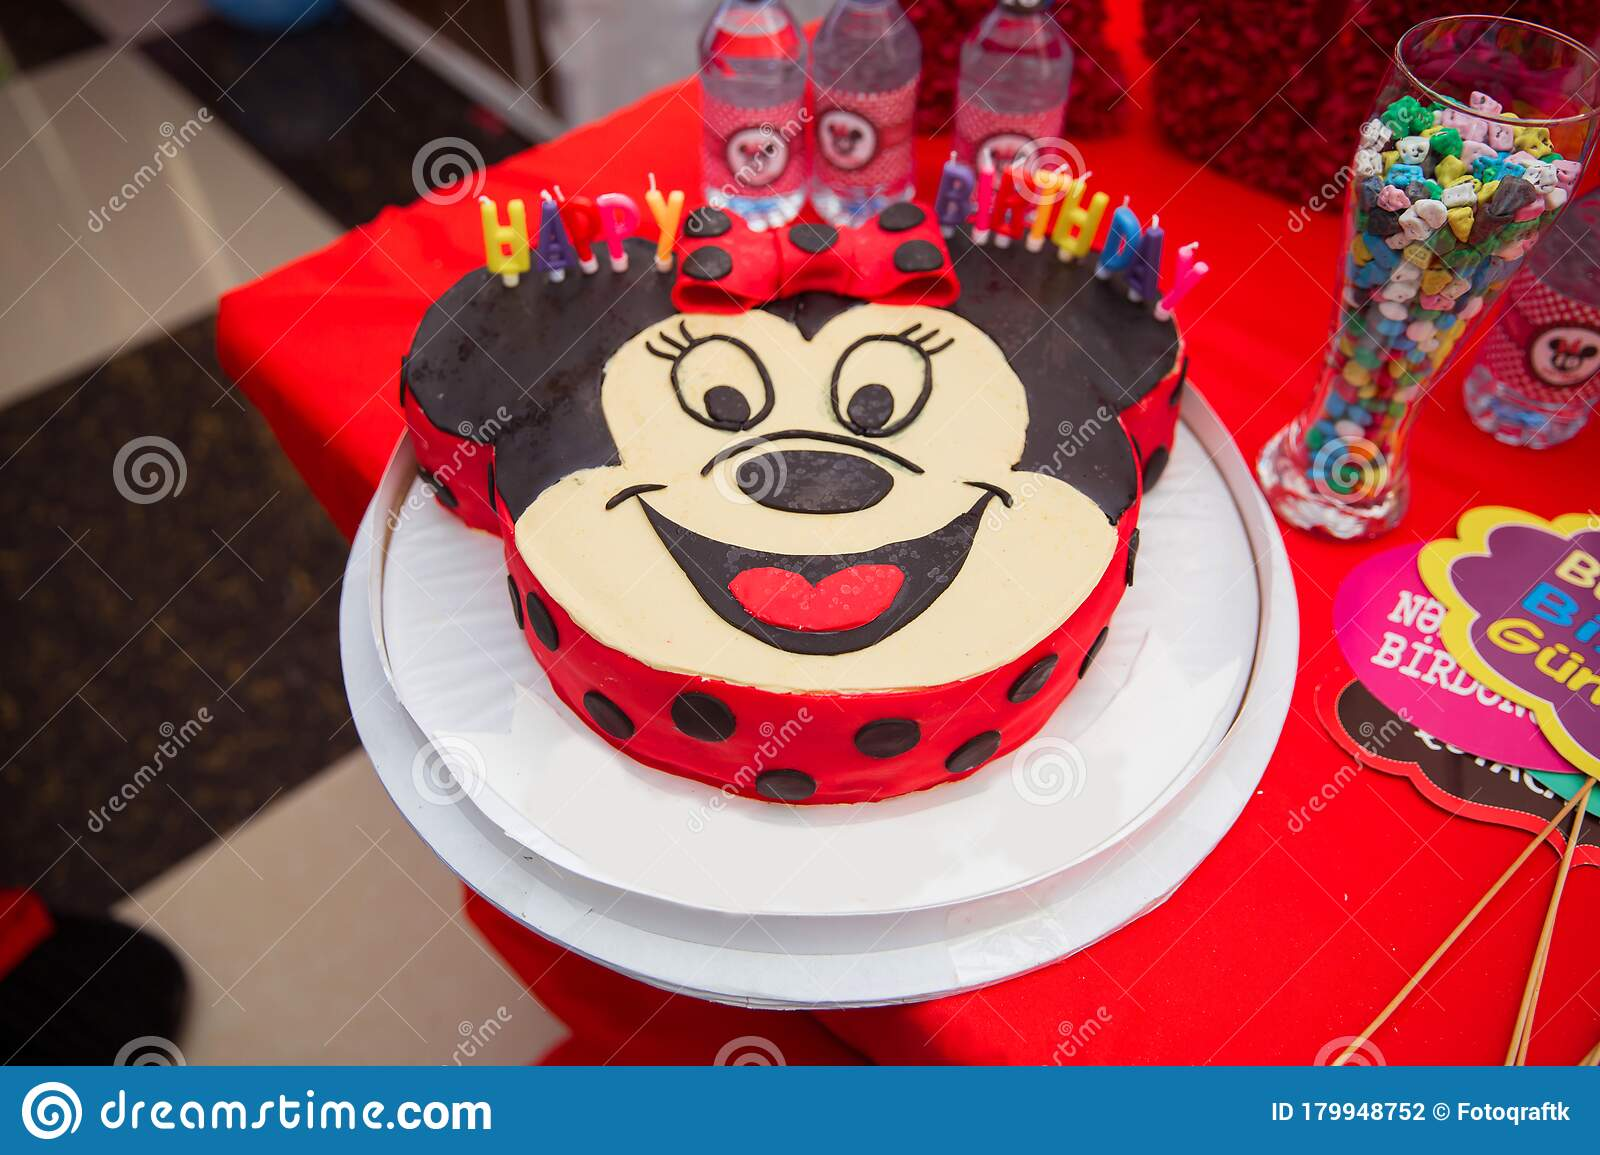 Happy Birthday 10 Cake Mickey Mouse Red Cake Themed Design Of Desserts On The Theme Of Mickey Mouse Thematic Walt Disney Editorial Photography Image Of Cute Baked 179948752